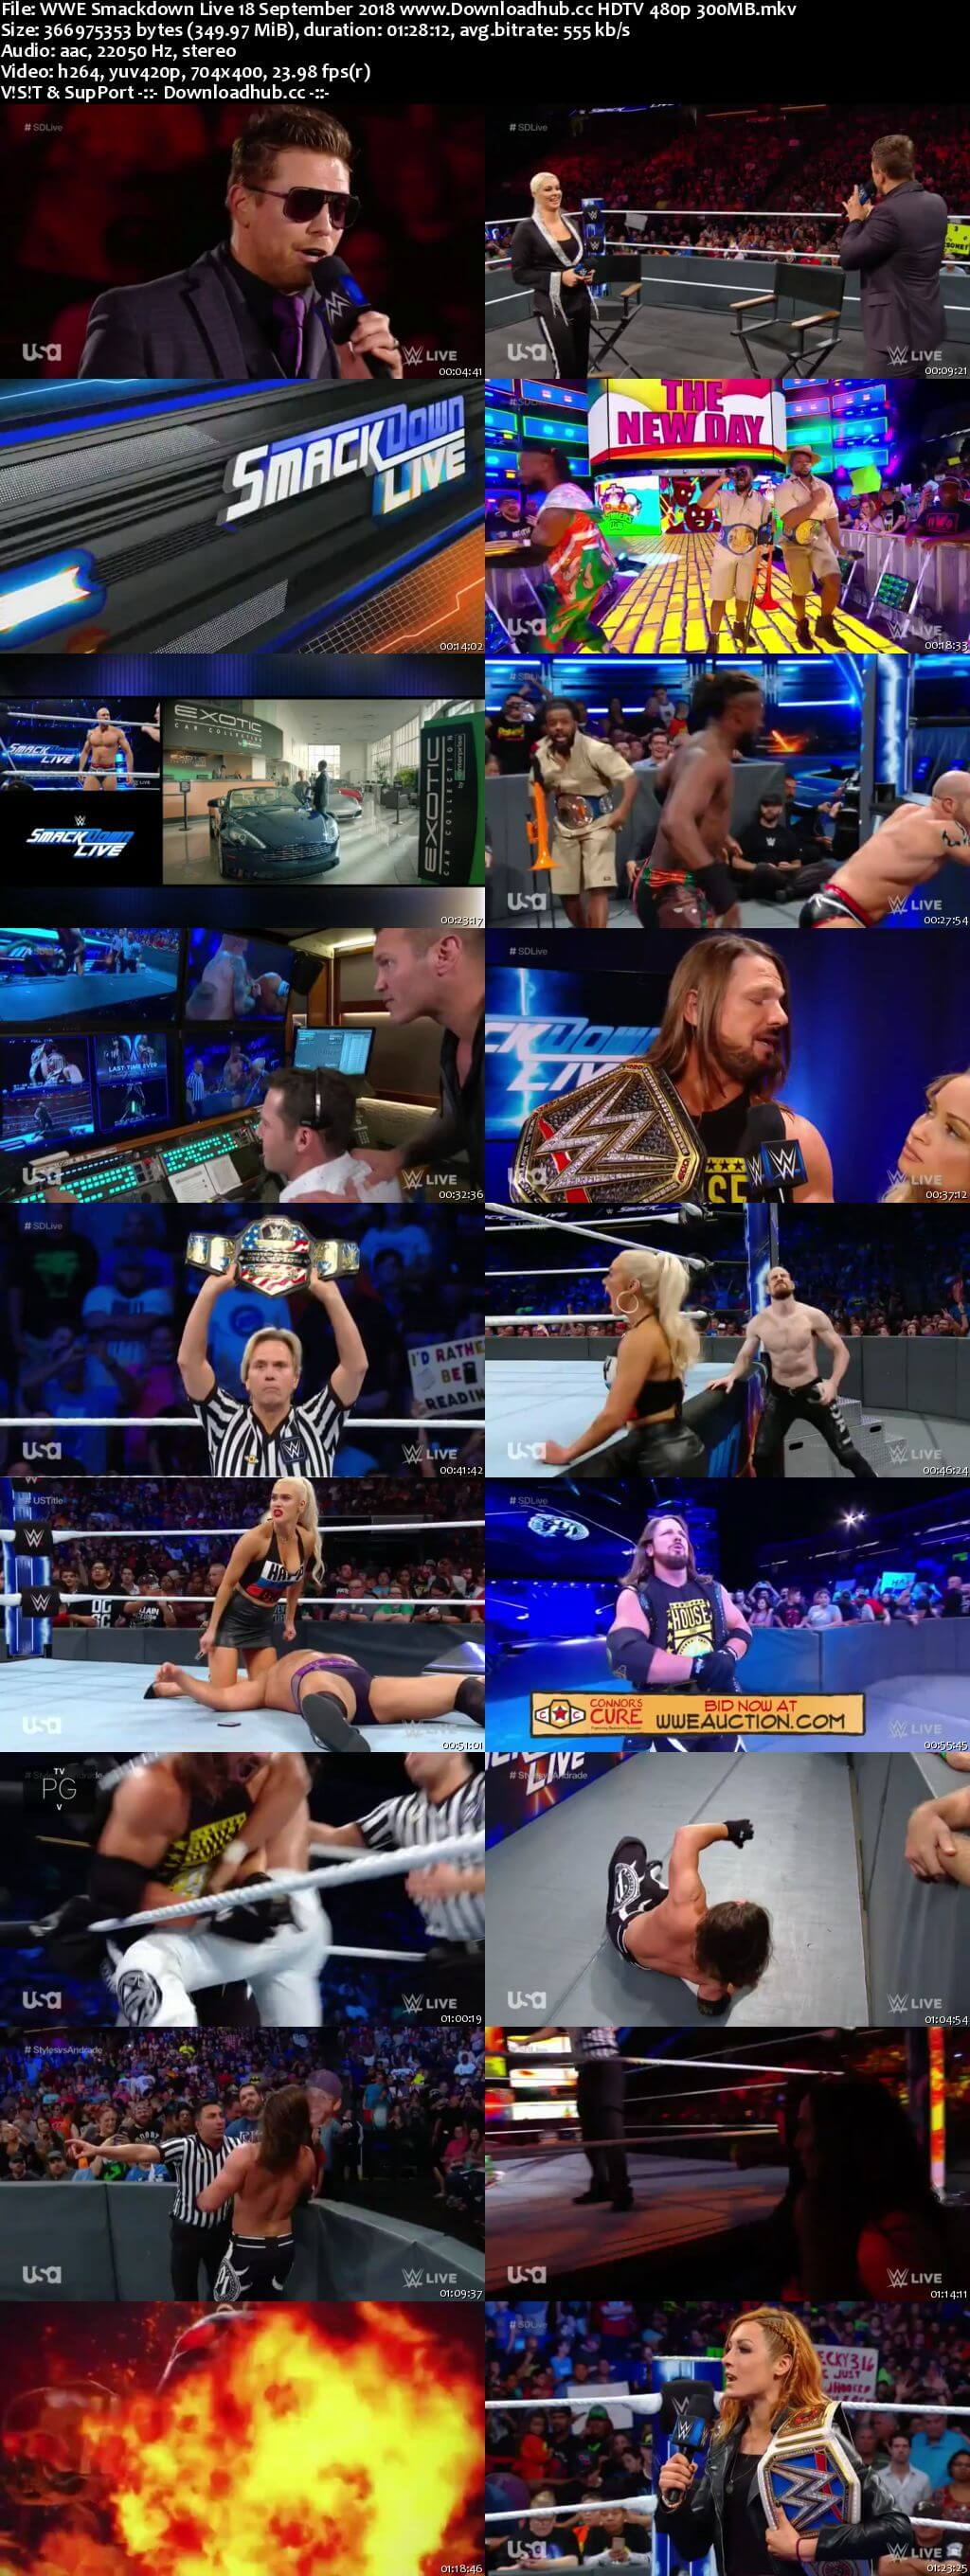 WWE Smackdown Live 18th September 2018 300MB HDTV 480p